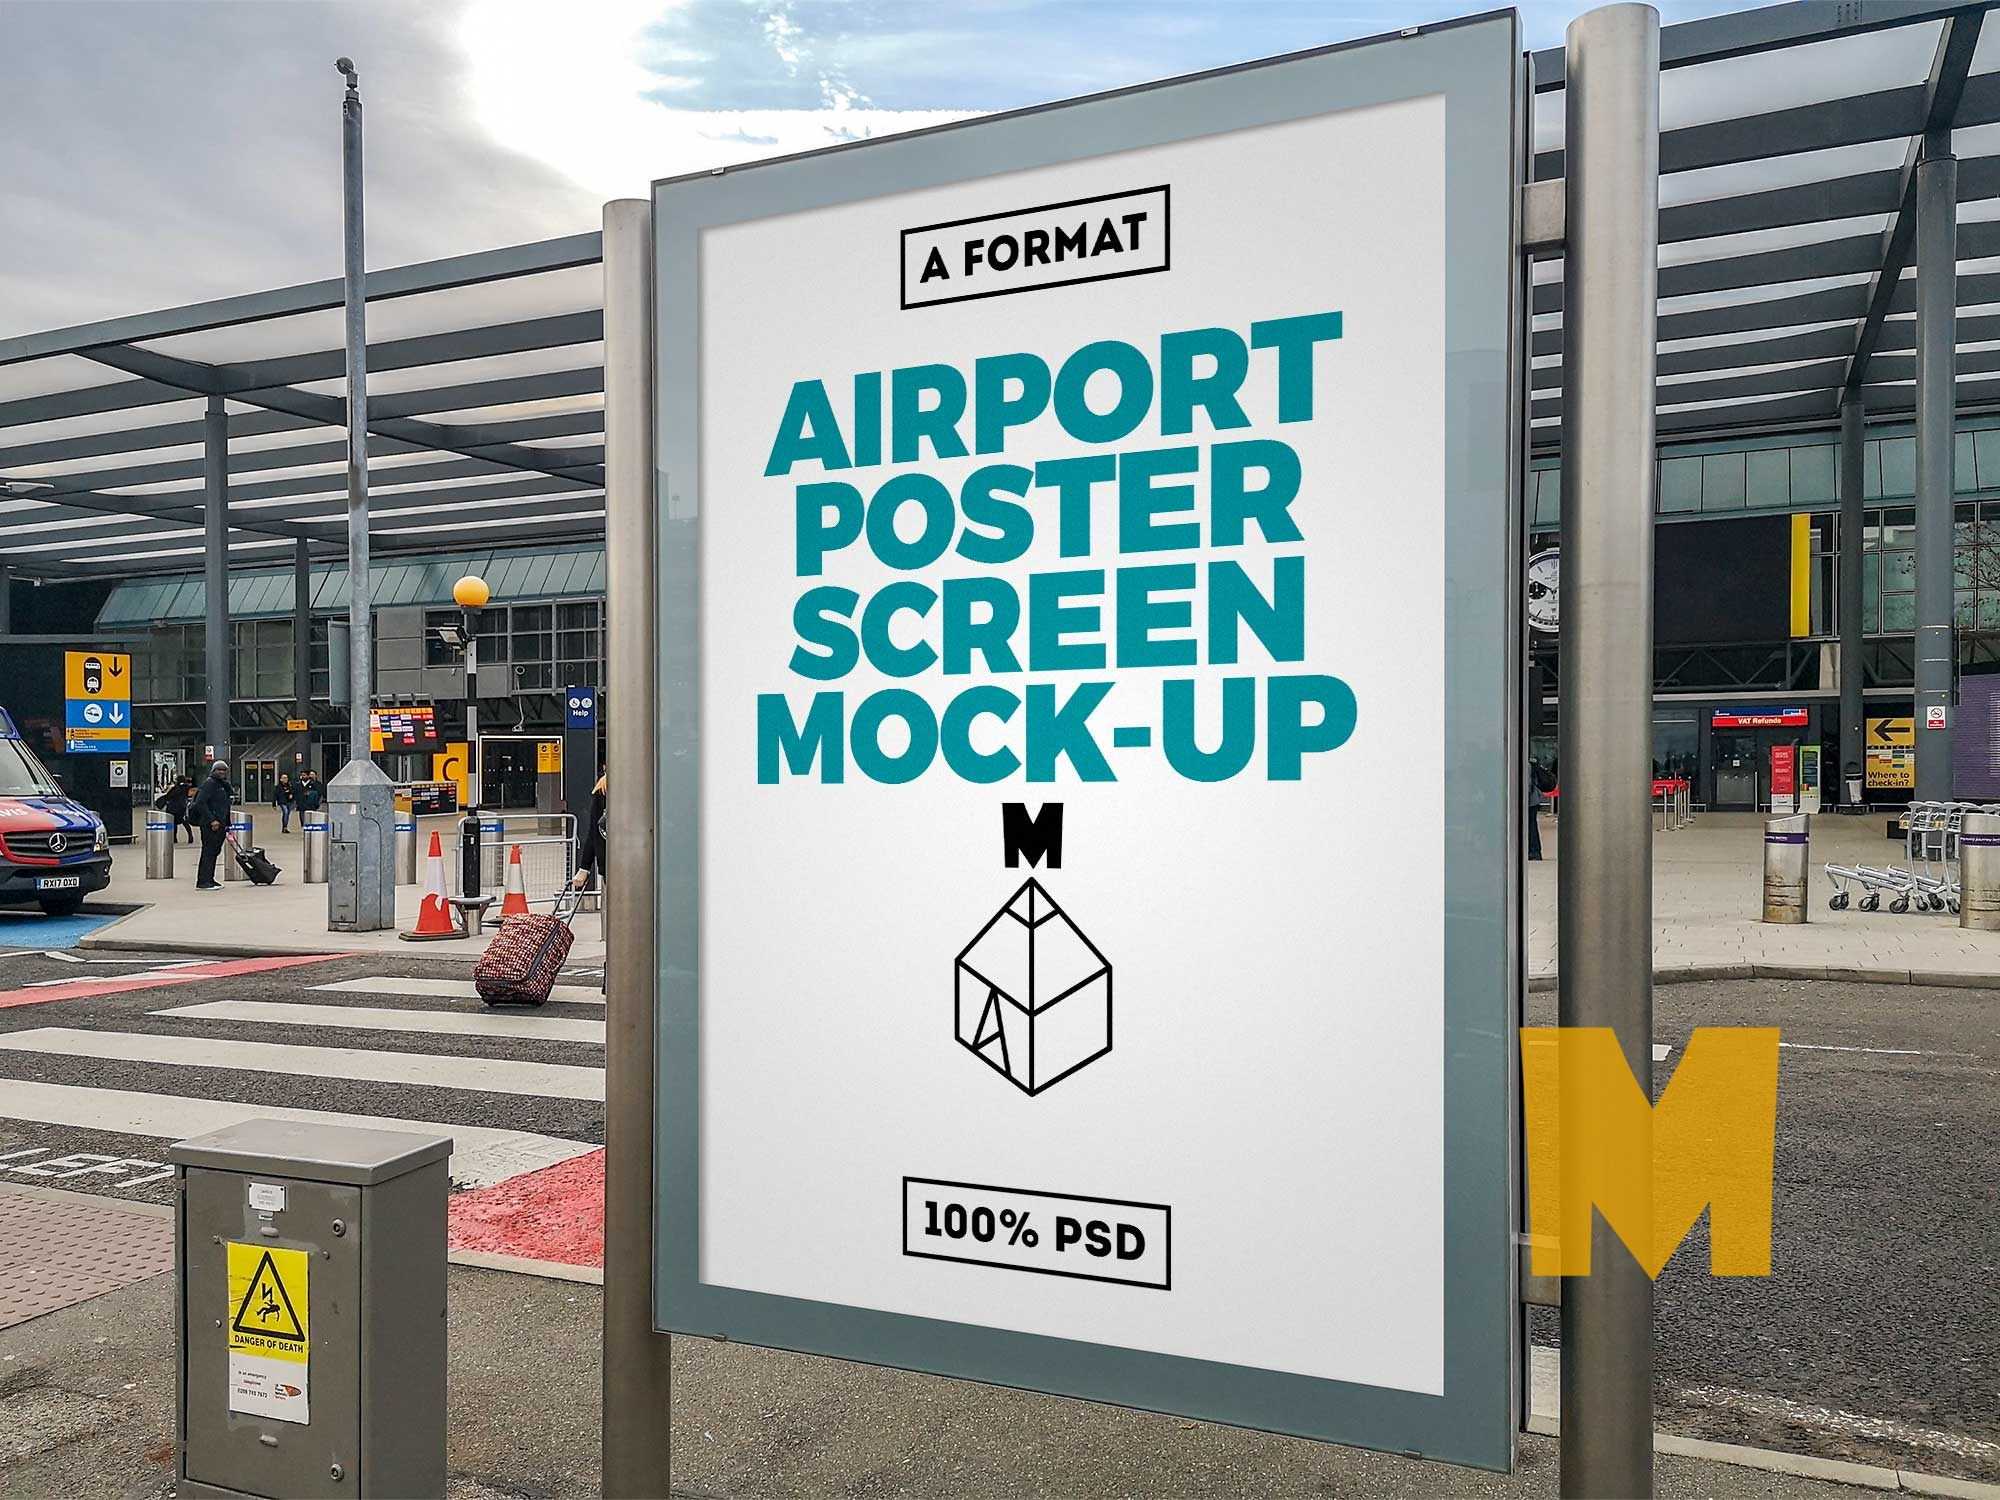 Airport Poster Screen Mockup